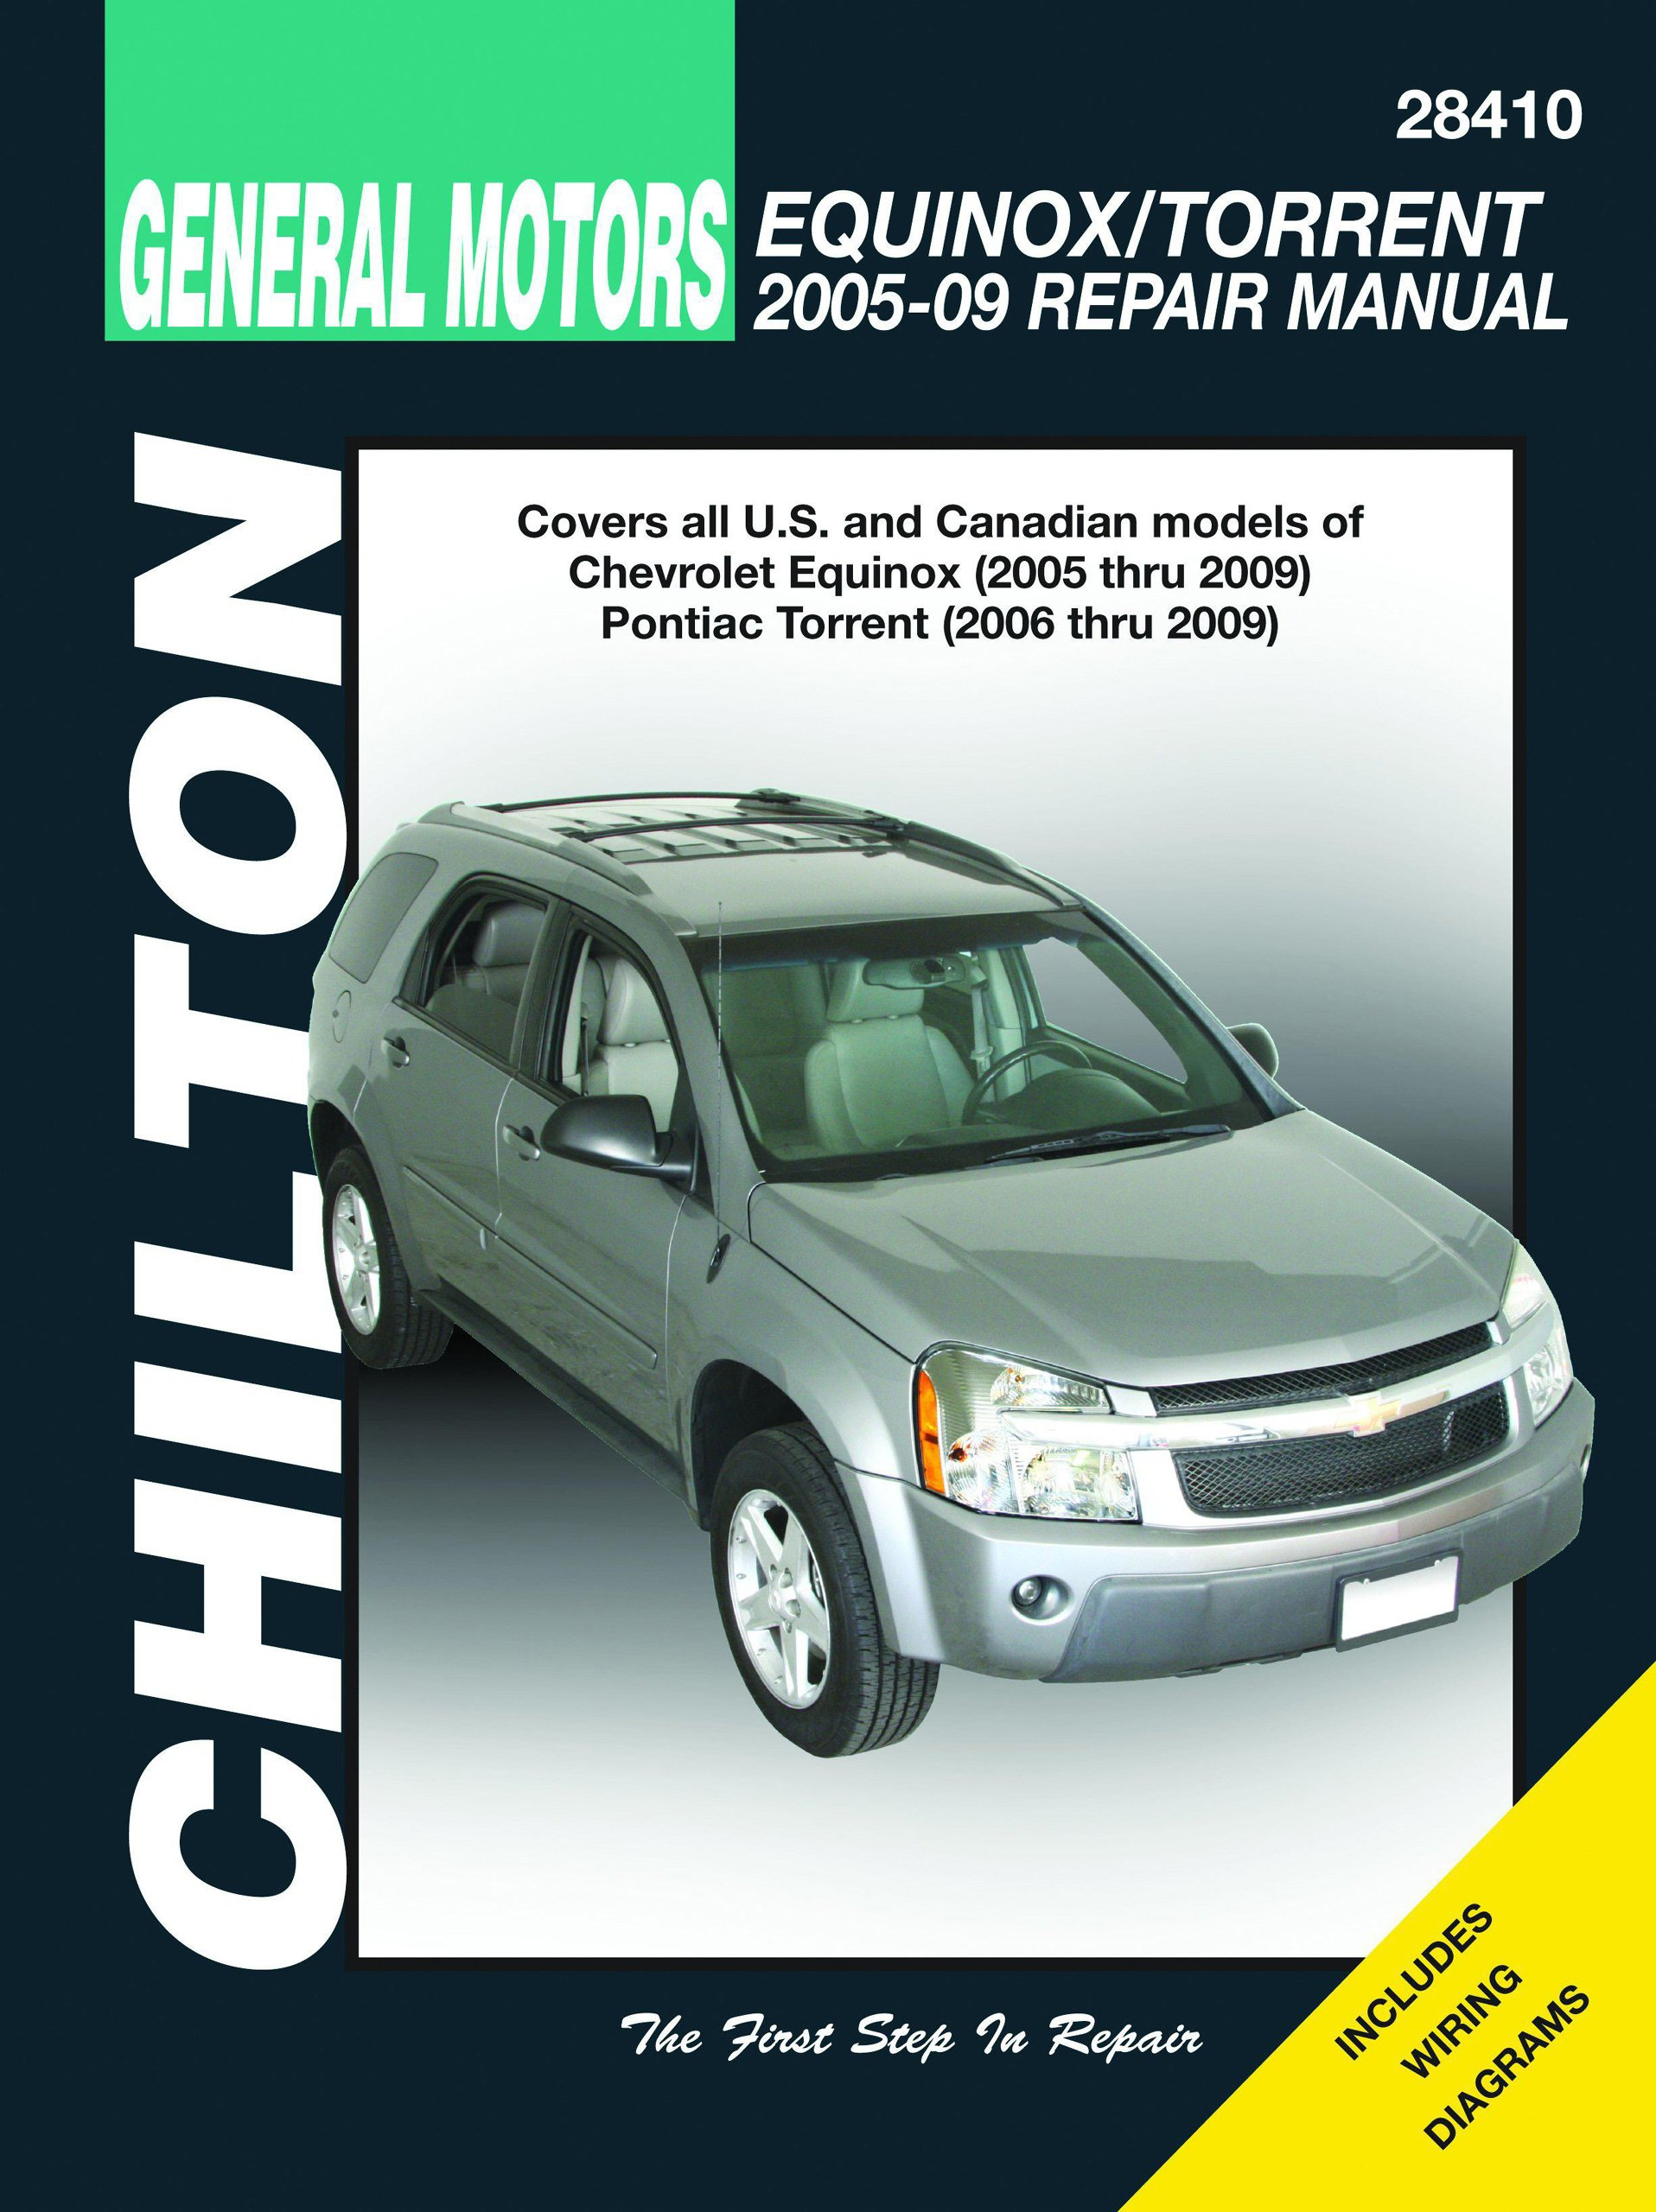 Buy Chevrolet Equinox Pontiac Torrent 05 09 Chilton Chiltons Fog Lights Wiring Diagram Total Car Care Repair Manuals Book Online At Low Prices In India